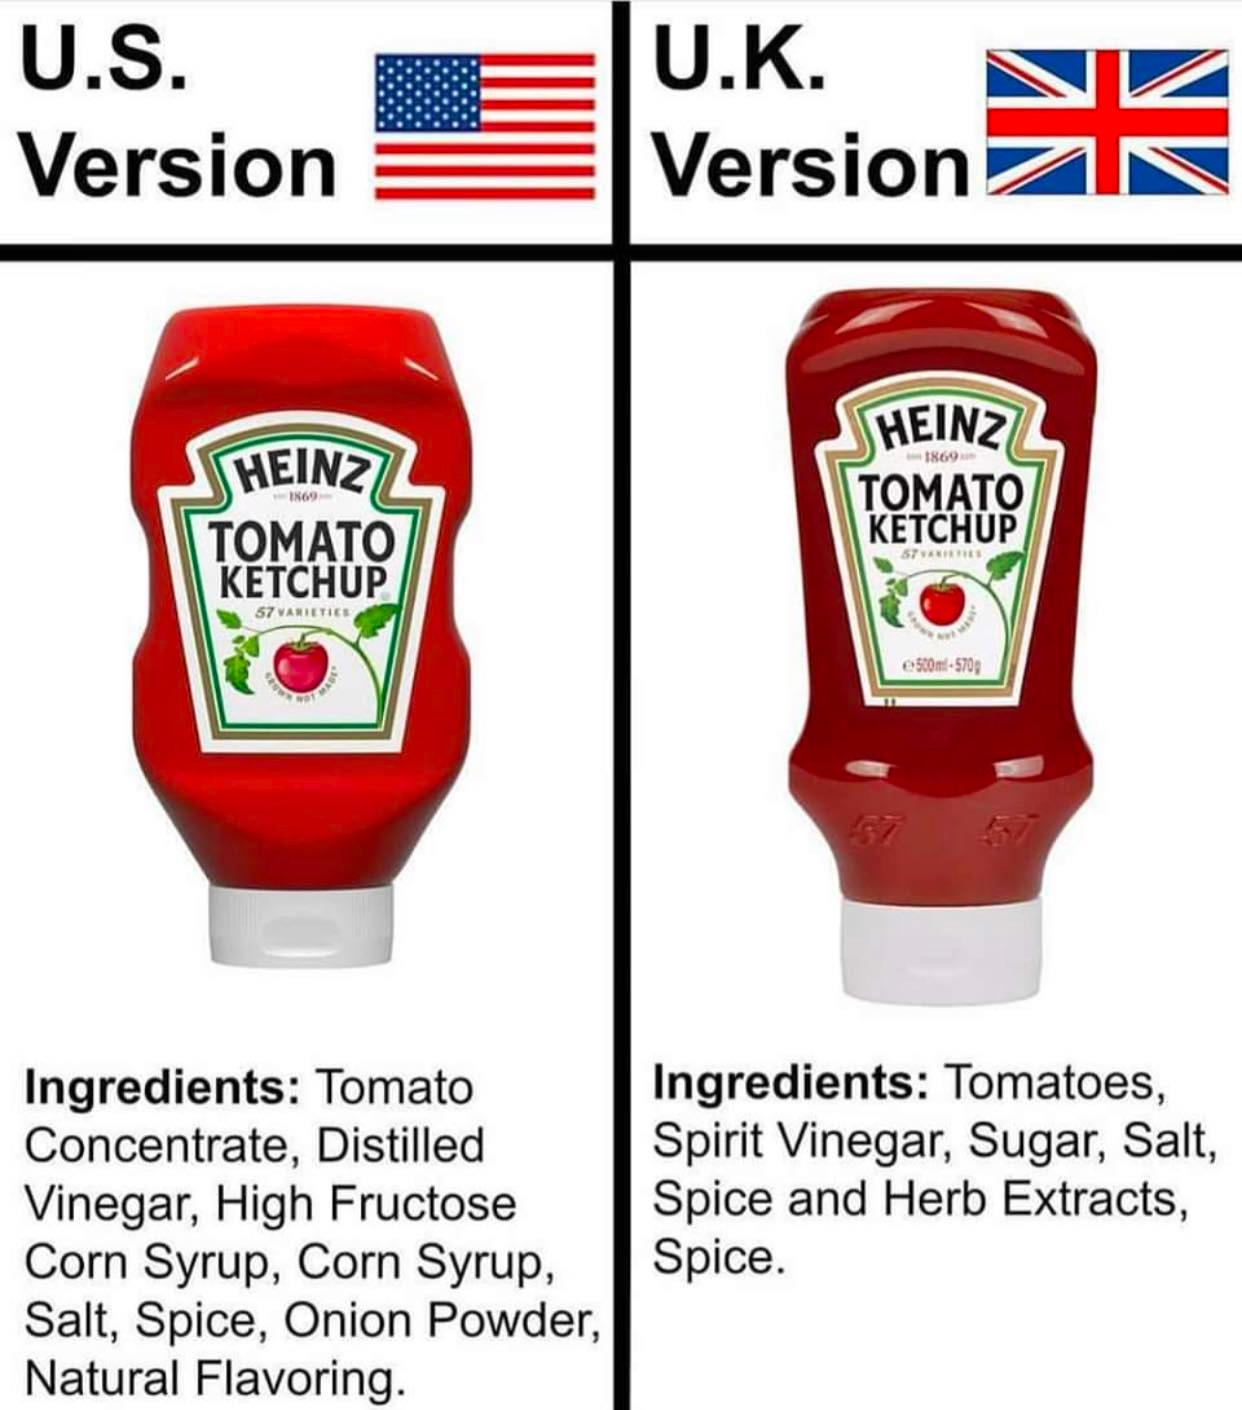 heinz-ketchup-US-UK-ingredients